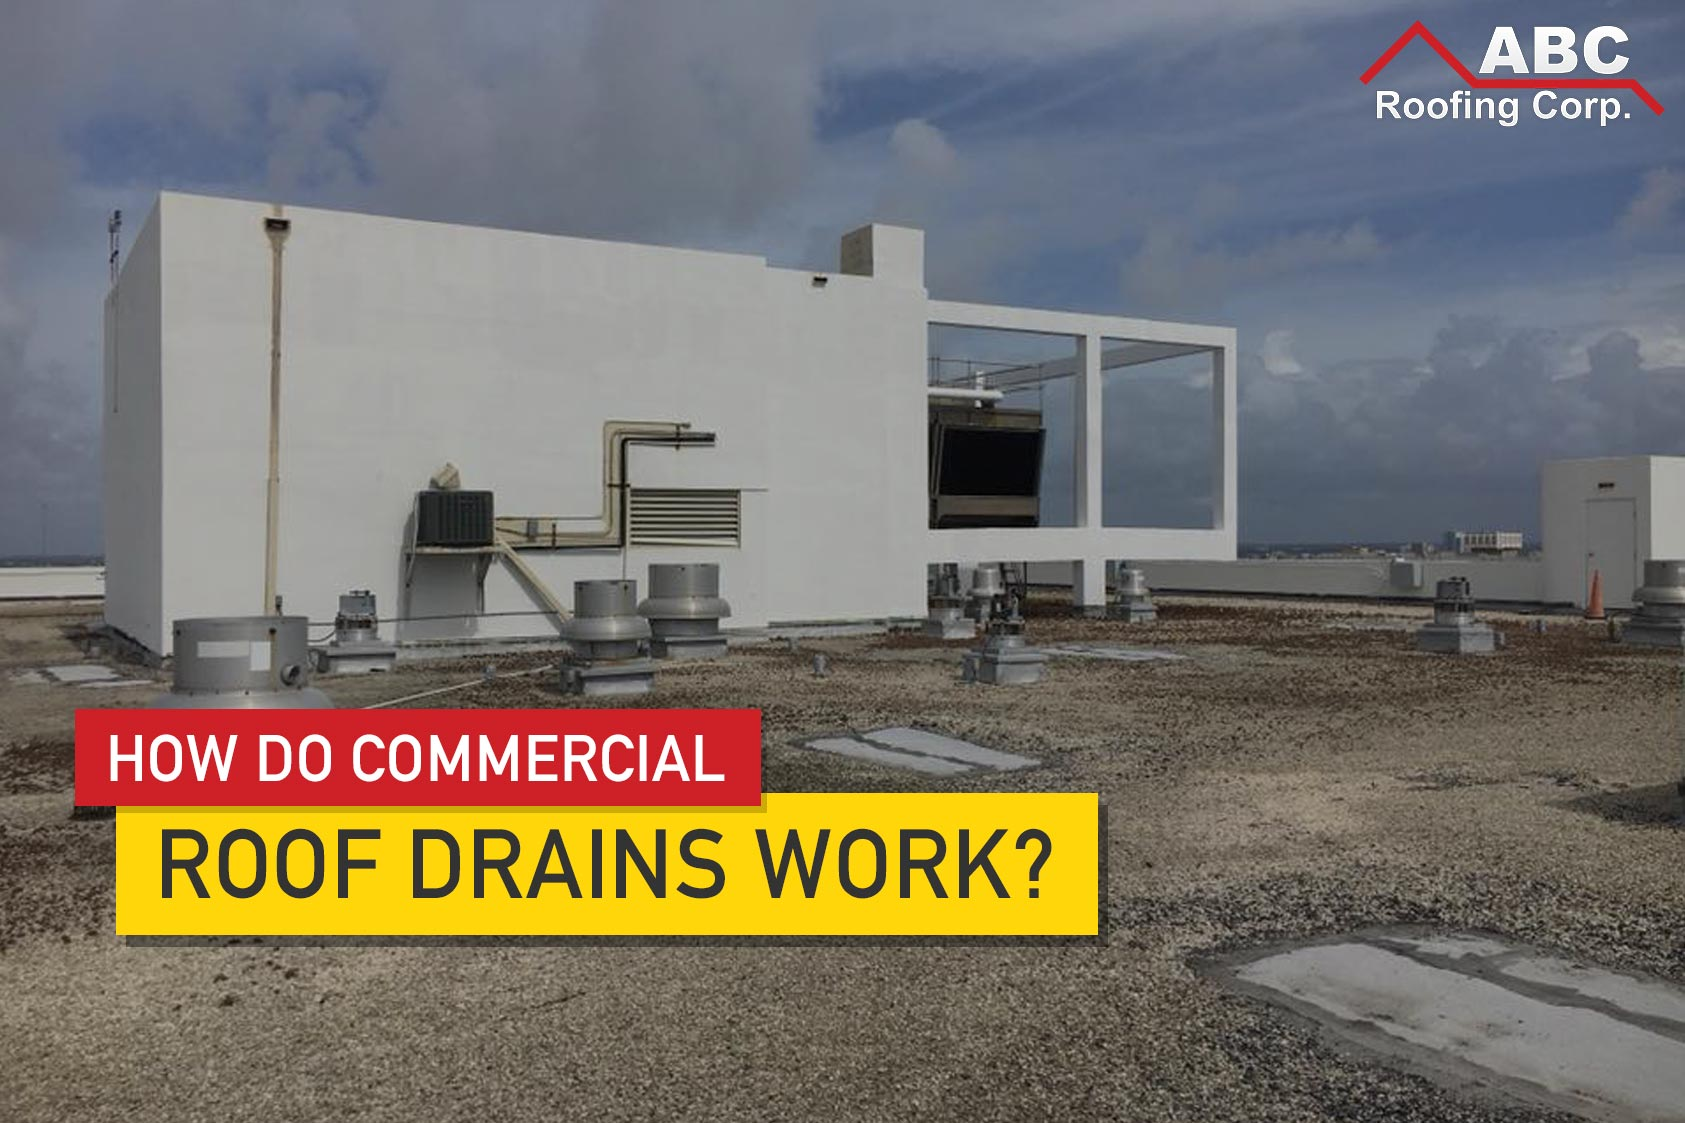 commercial roof drains - Roof Drains